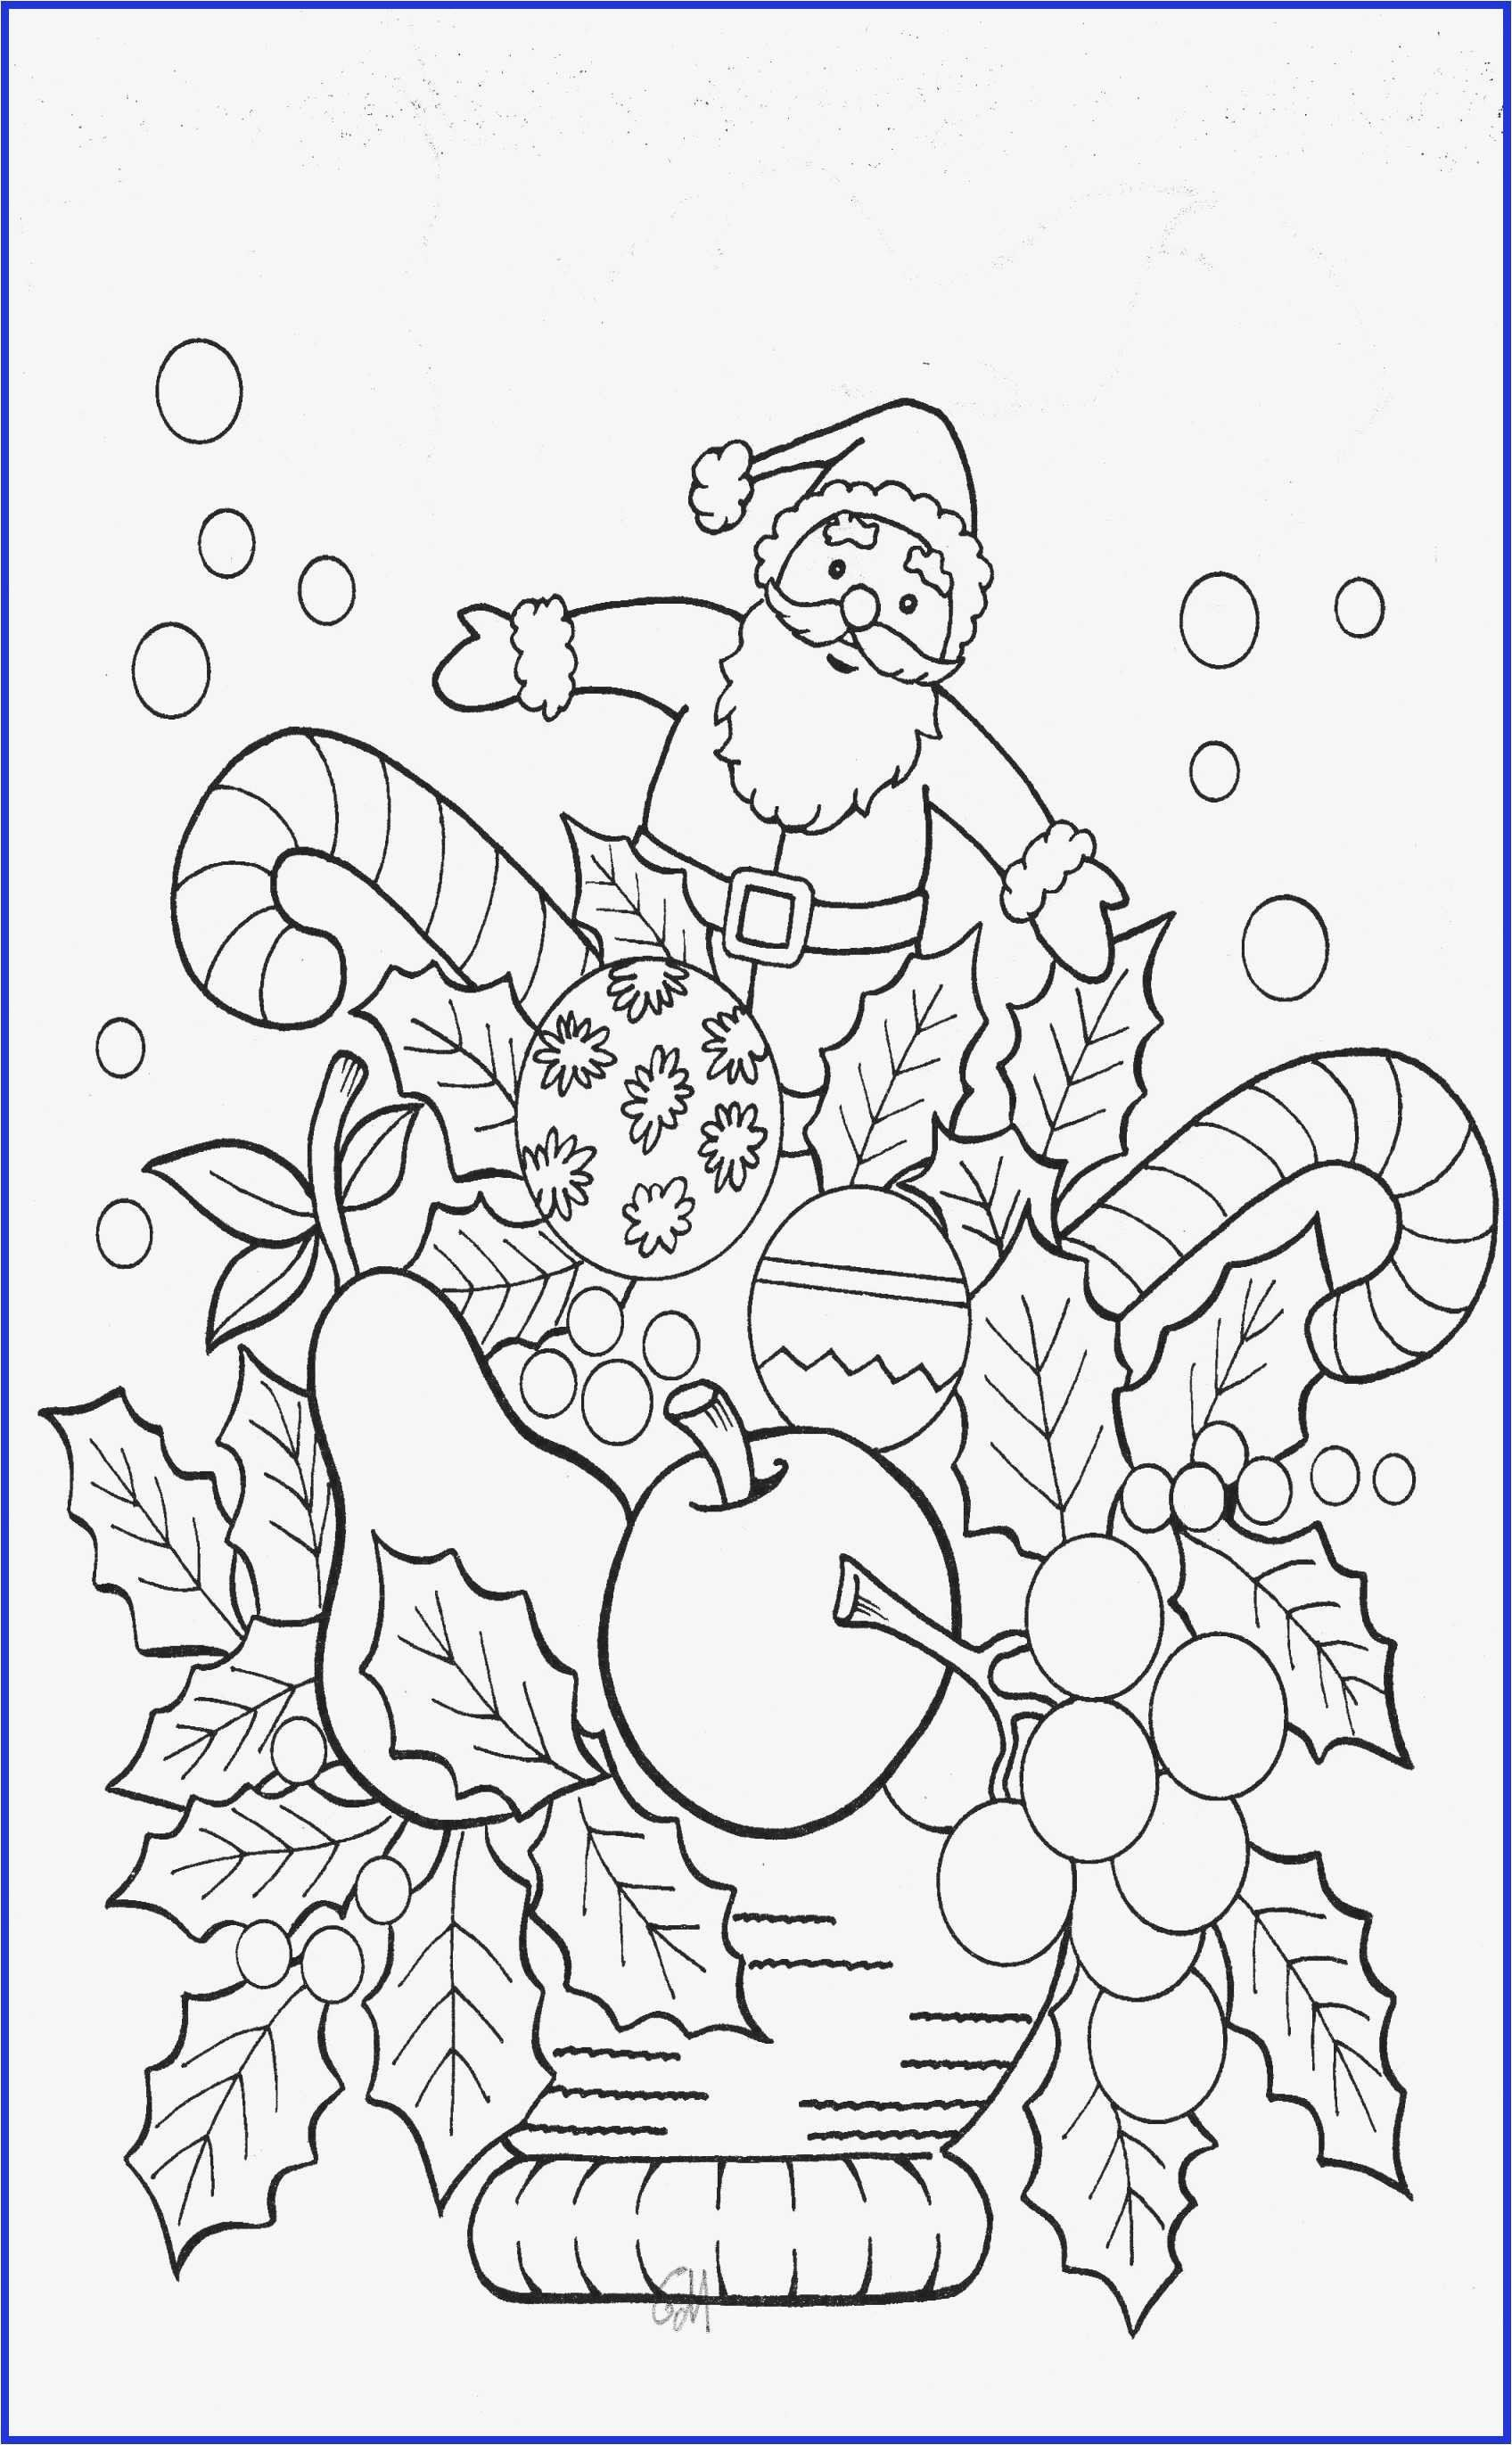 Coloring Pictures Of Moana Luxury Recolor Coloring Book New Color Therapy B Printable Christmas Coloring Pages Tinkerbell Coloring Pages Mandala Coloring Pages